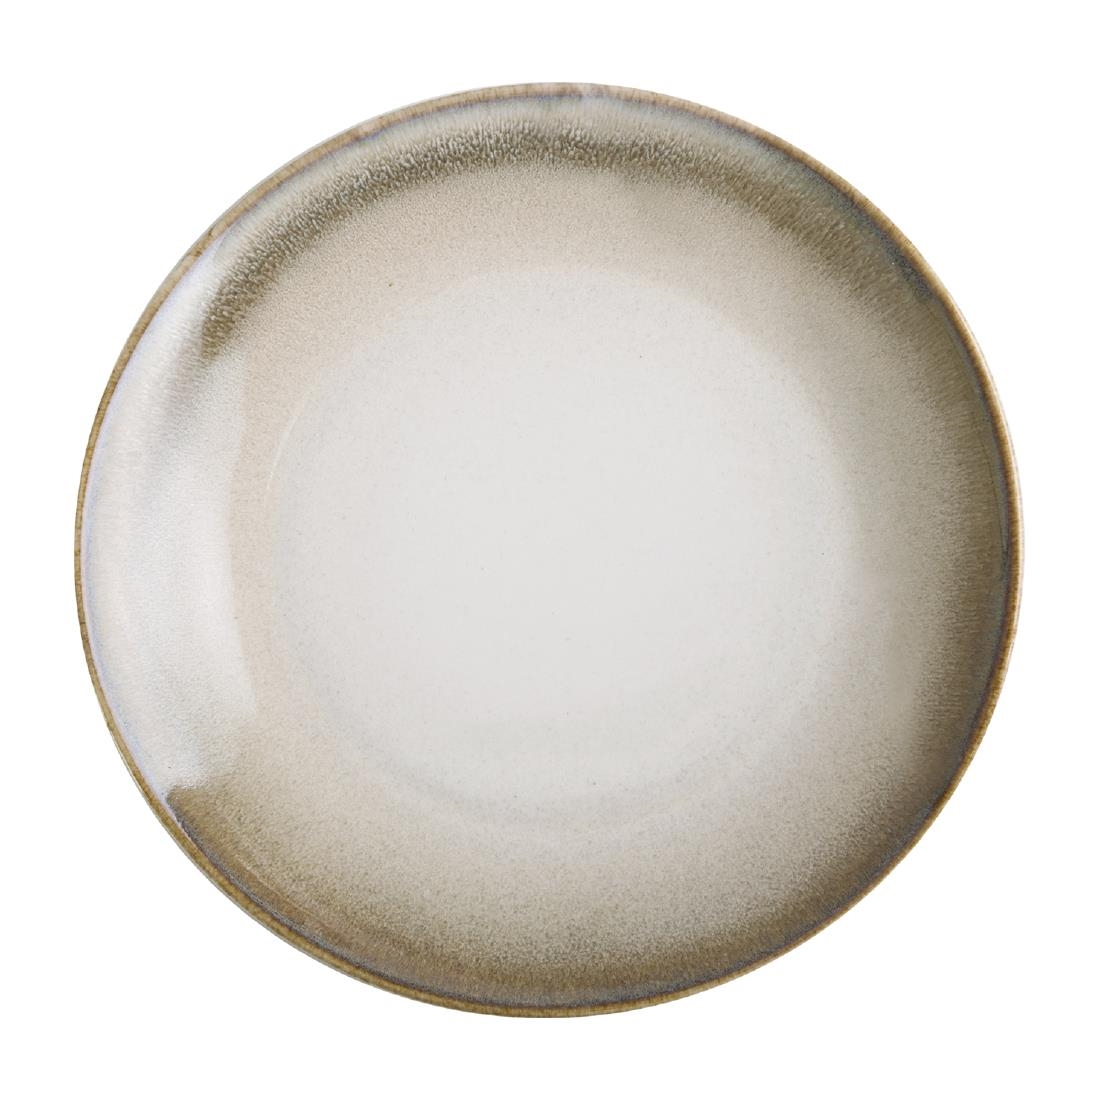 Olympia Birch Taupe Coupe Plates 205mm Pack of 6